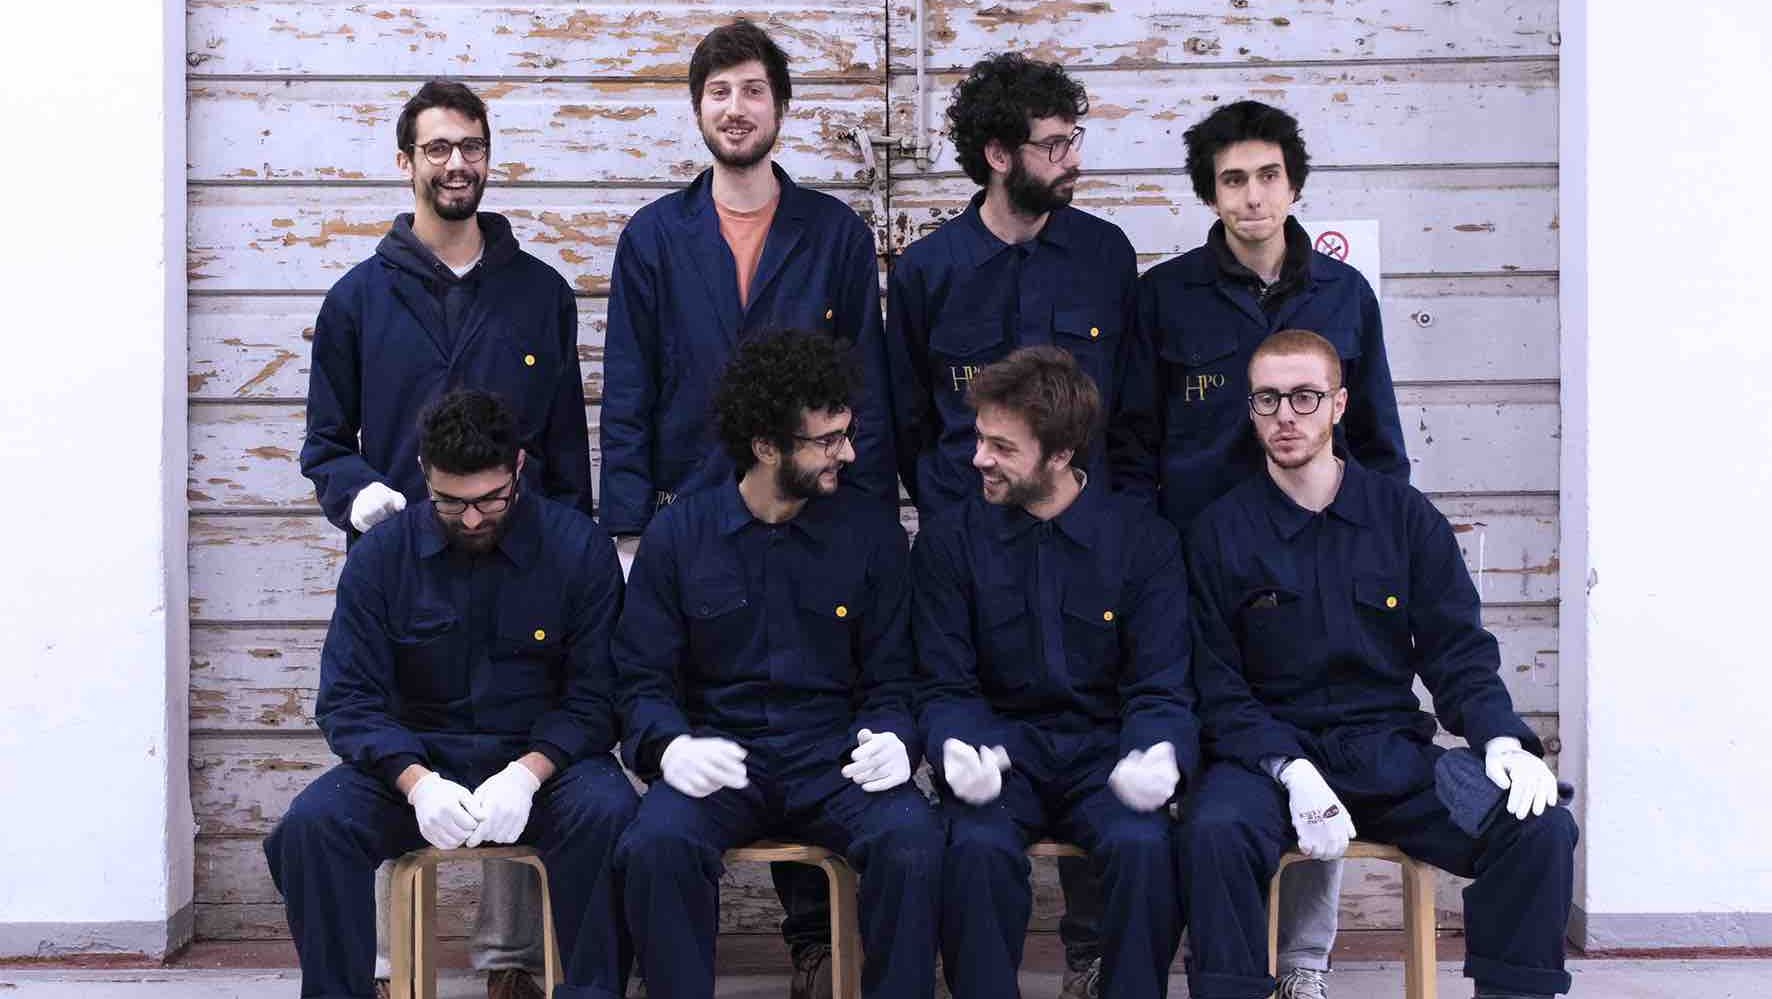 HPO: An Italian Collective That Doesn't Play By the Rules